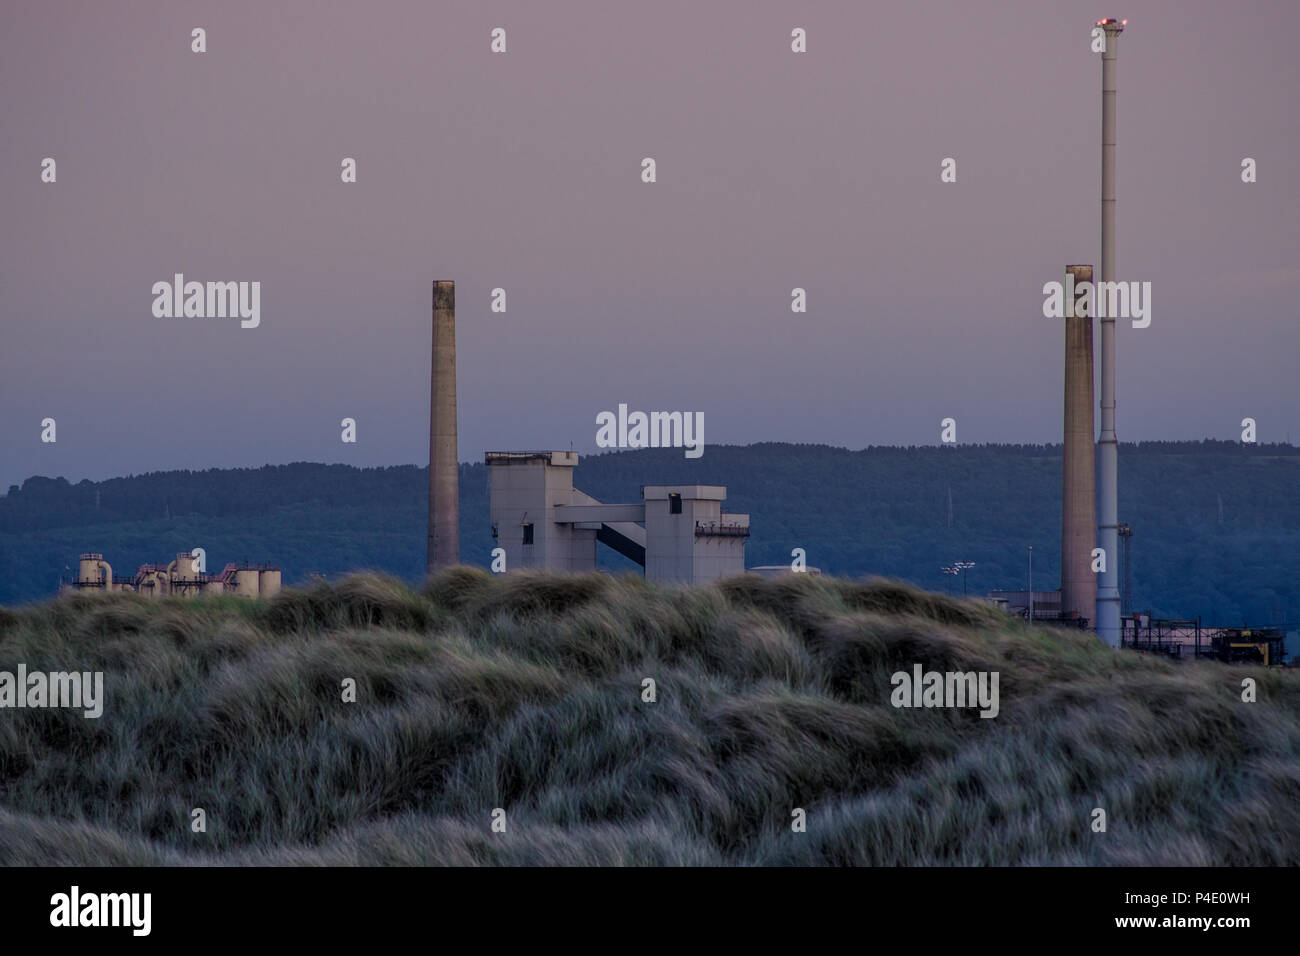 Industrial background by the north east coast of England. South Gare at Redcar. Stock Photo